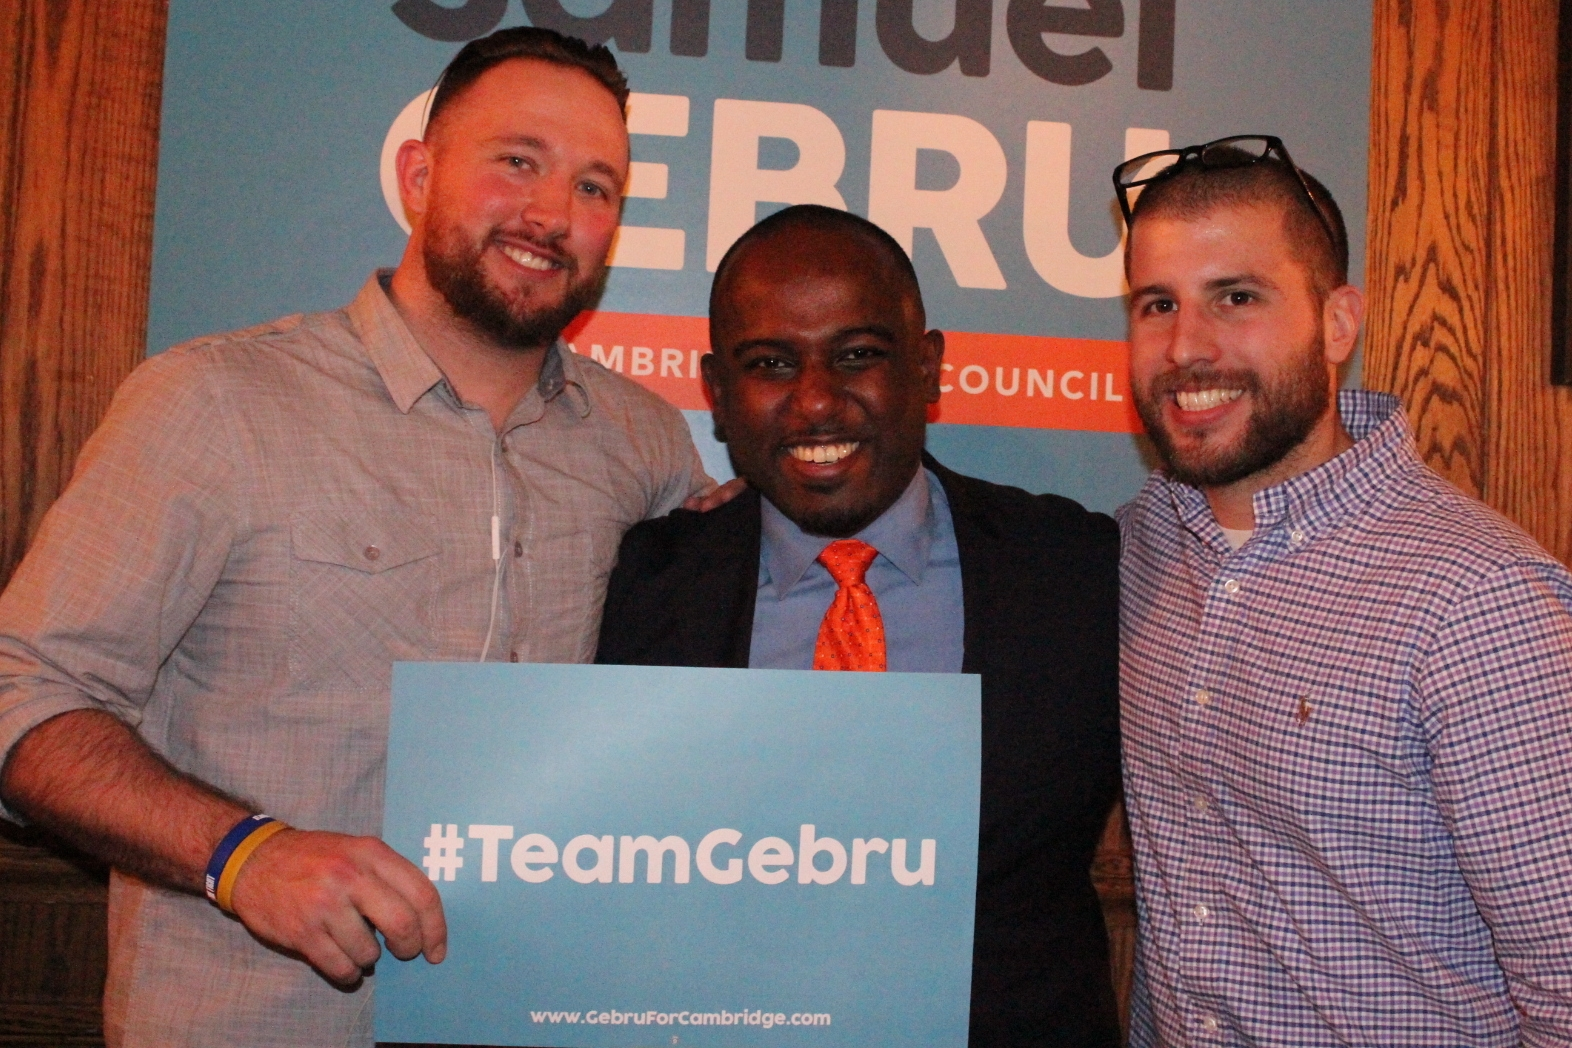 Meet Team gebru -